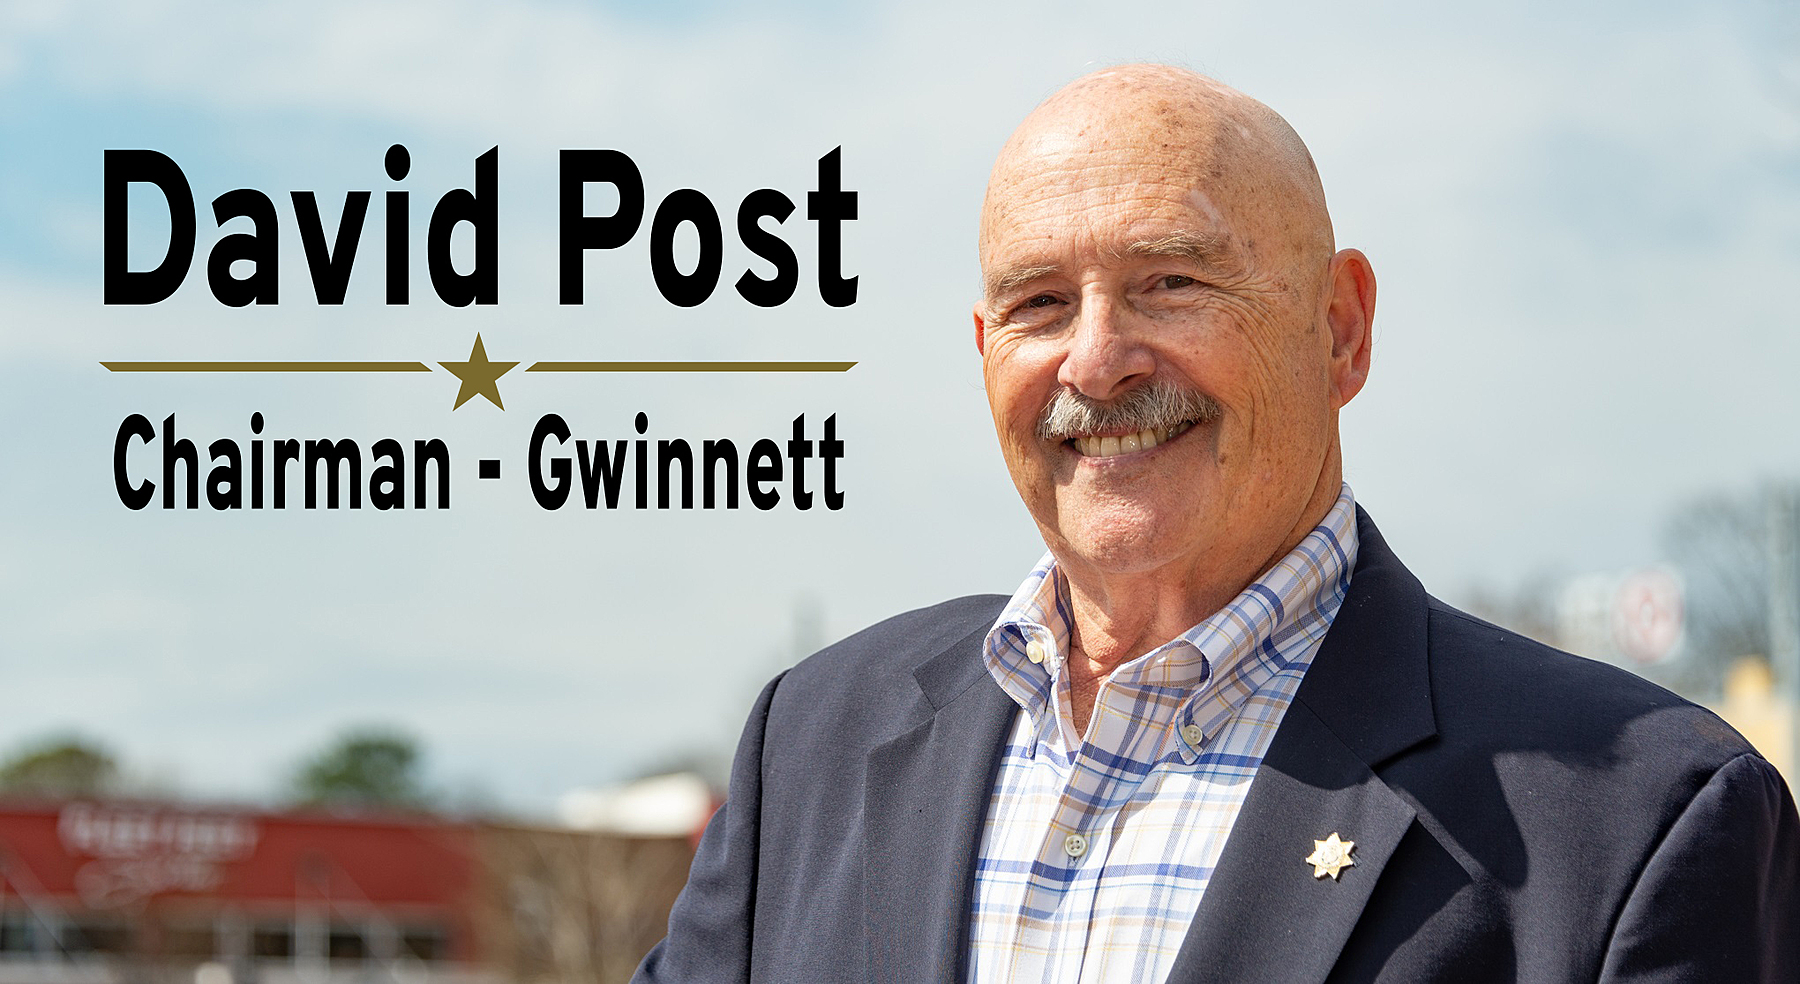 David Post for Chairman: General Fund